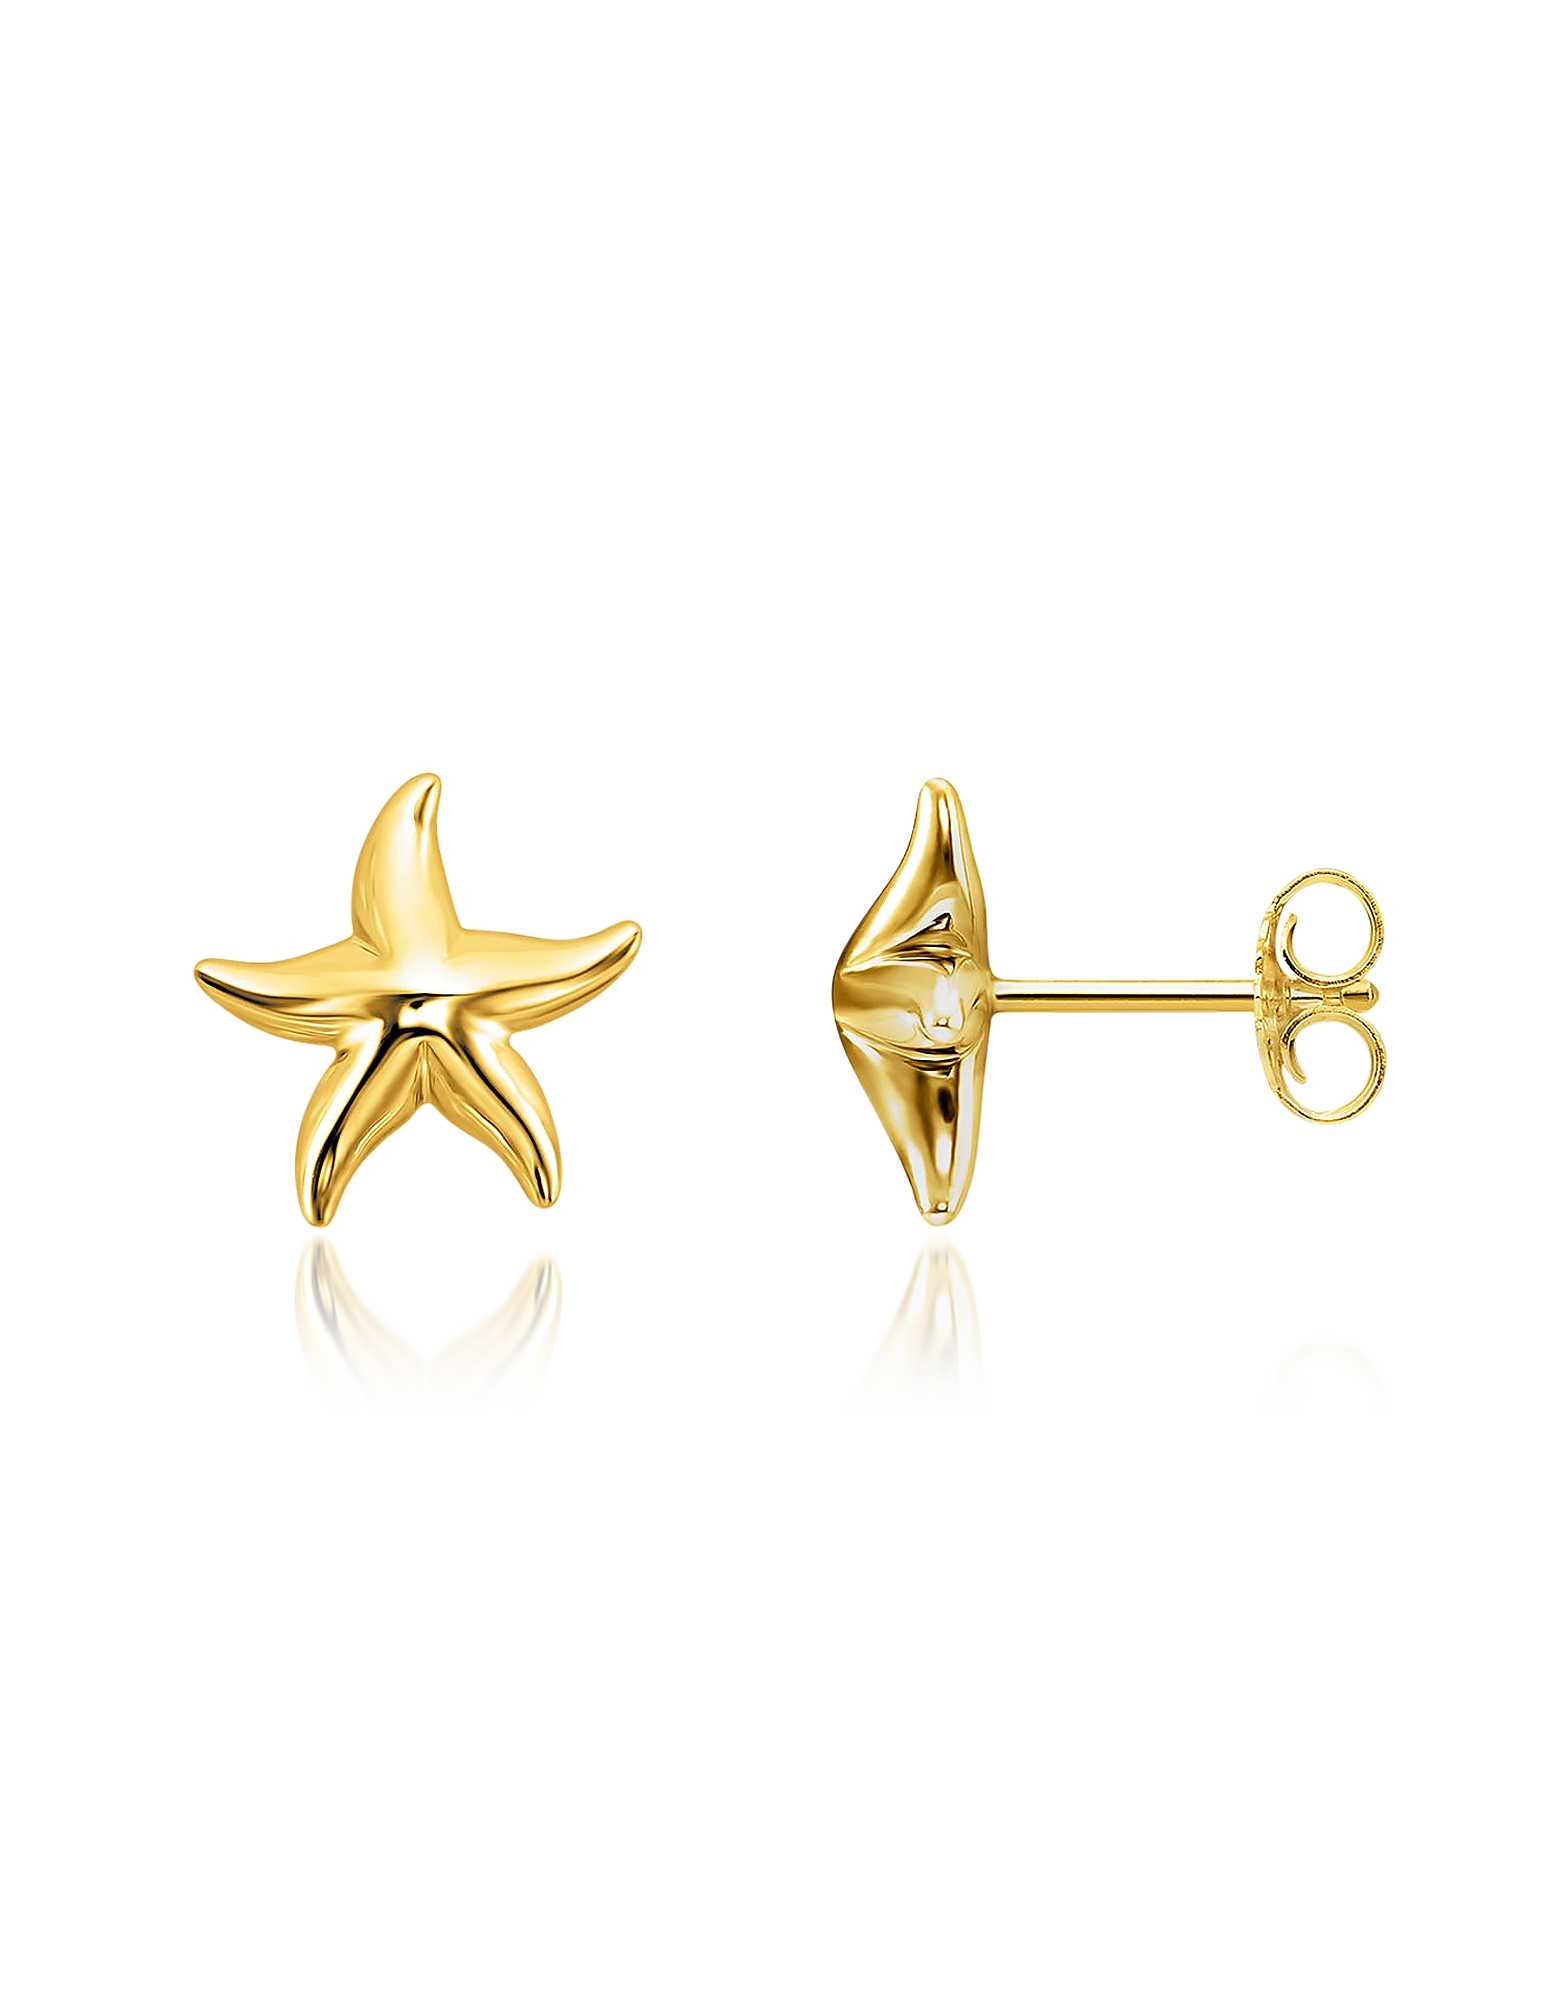 Thomas Sabo Earrings, Gold Plated Sterling Silver Starfish Earrings w/White Zirconia